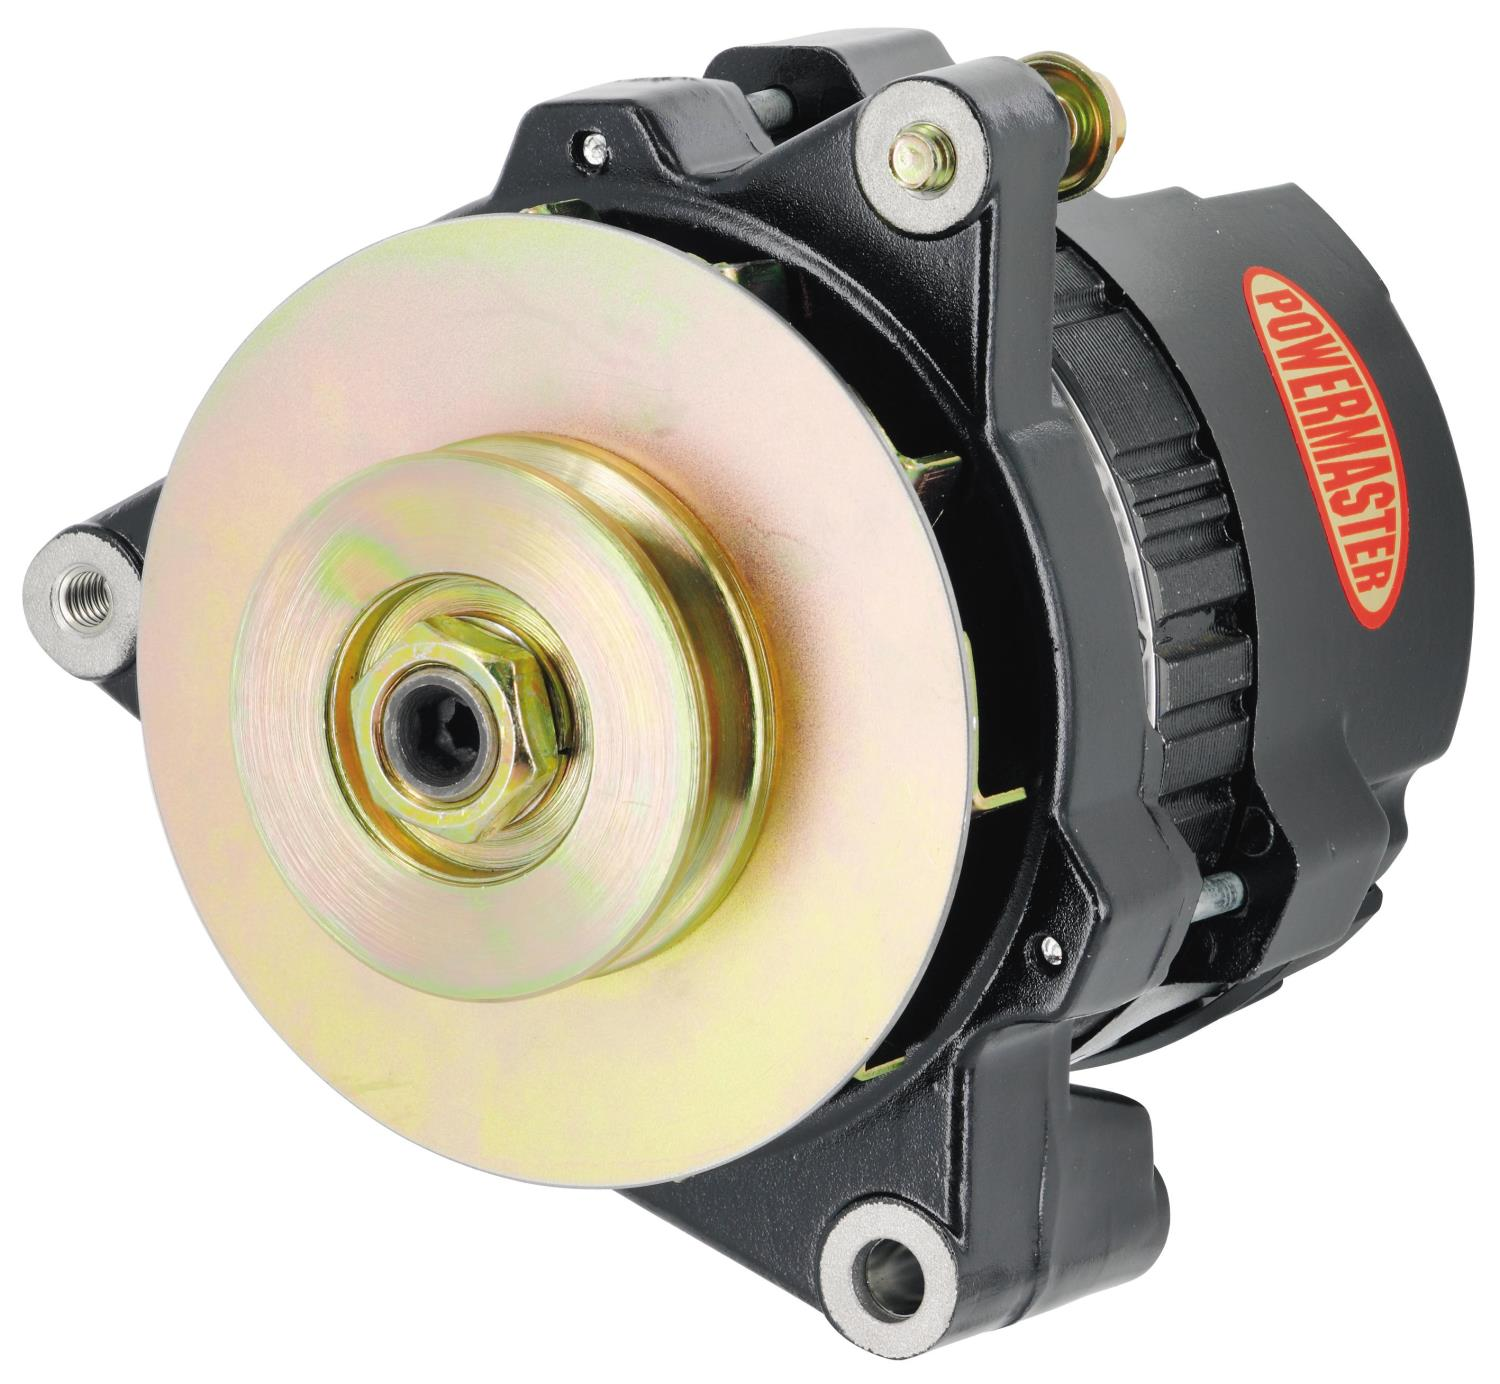 Powermaster 8476 - Powermaster GM CS121 Style 5x5 Compact Race Alternators